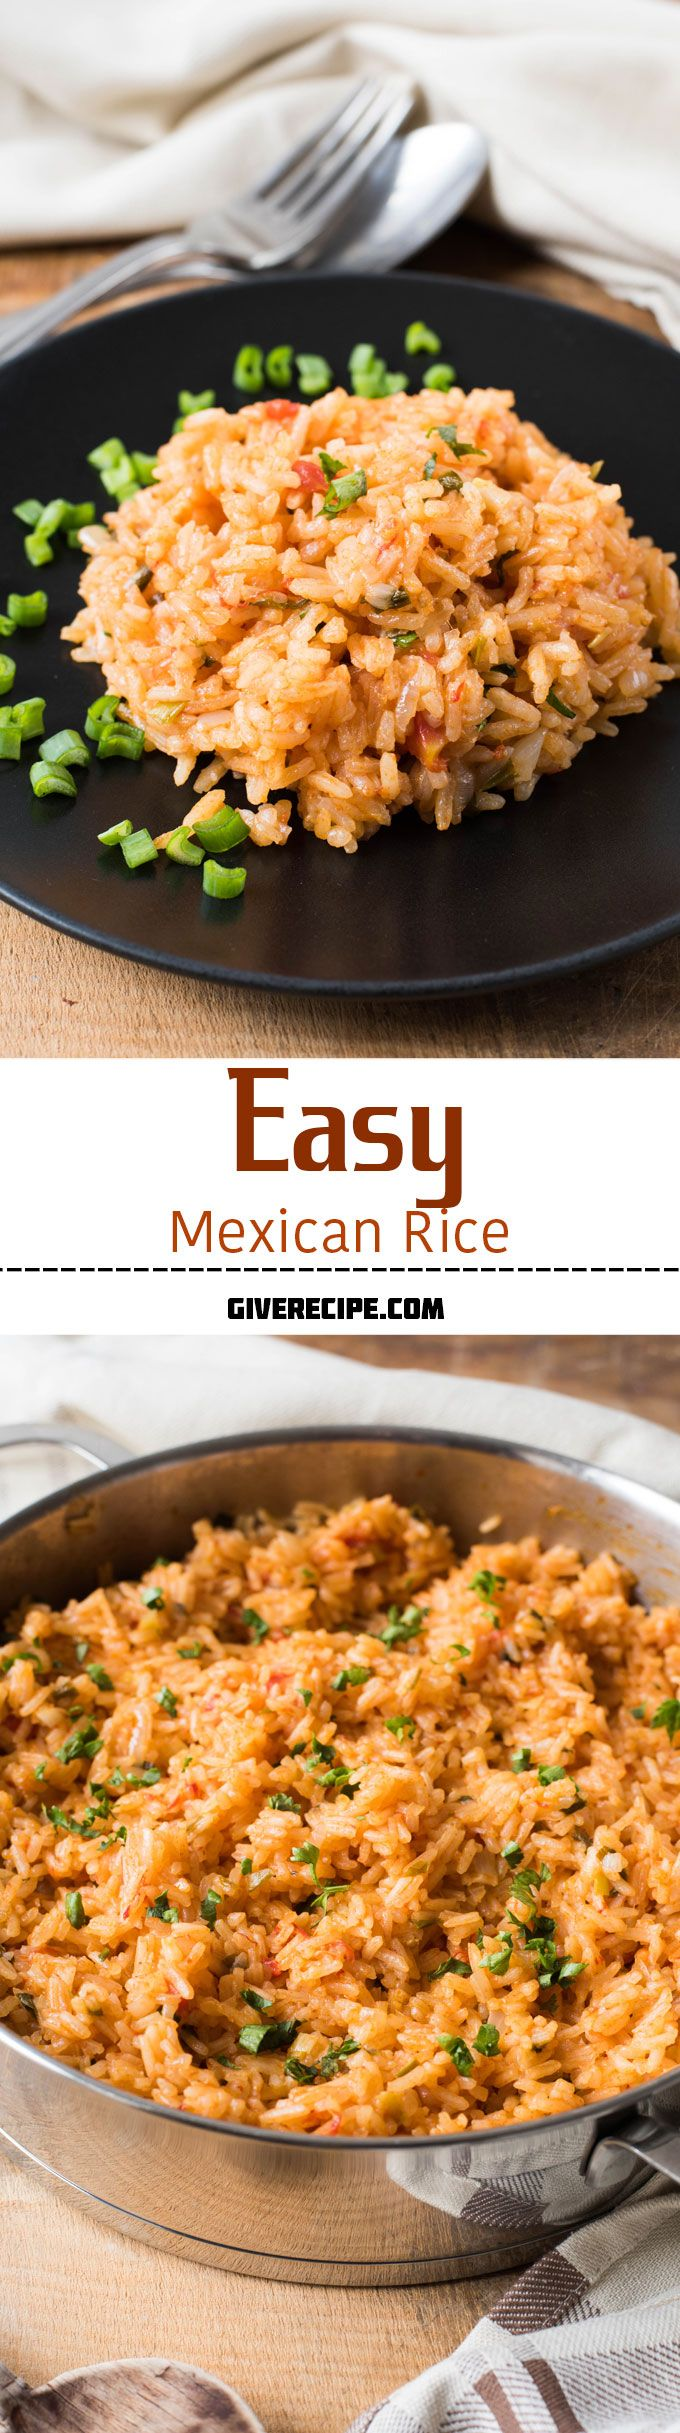 Easy Mexican Rice is a restaurant style Mexican food with my touch. Maybe even better than the ones served at restaurants! | giverecipe.com | #mexican #rice